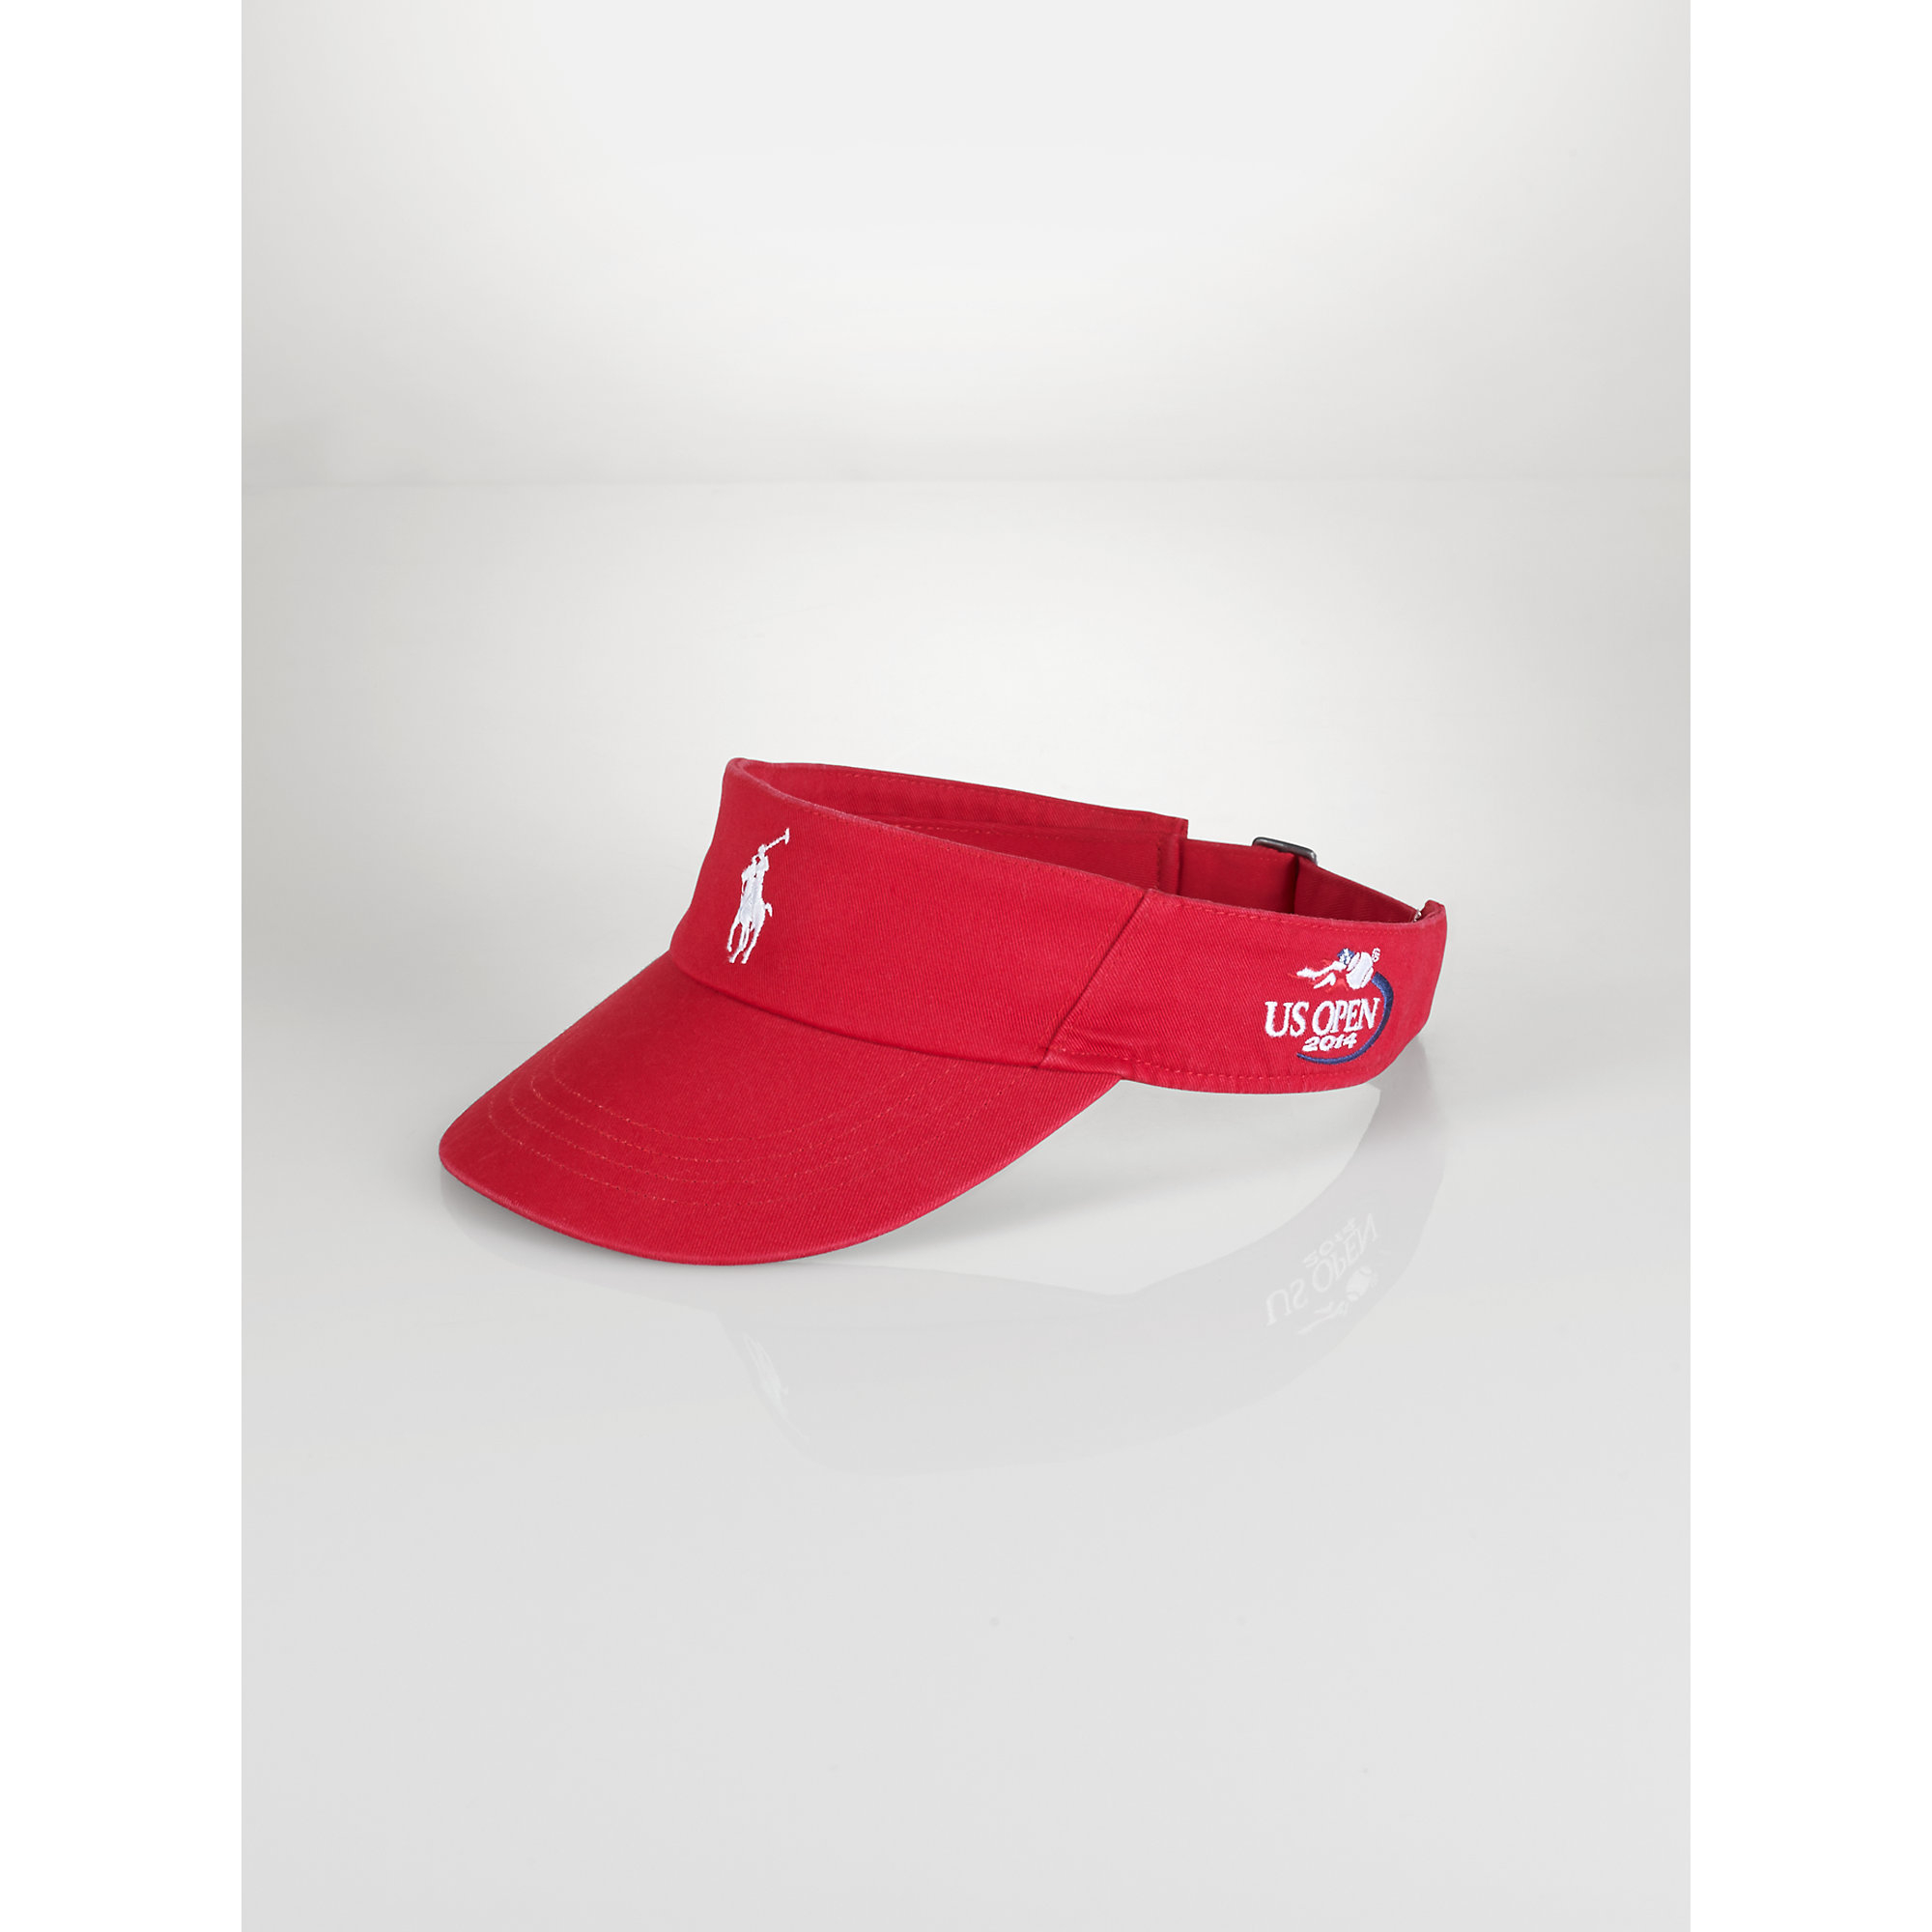 032a380f1b6 Lyst - Polo Ralph Lauren Us Open Pony Visor in Red for Men